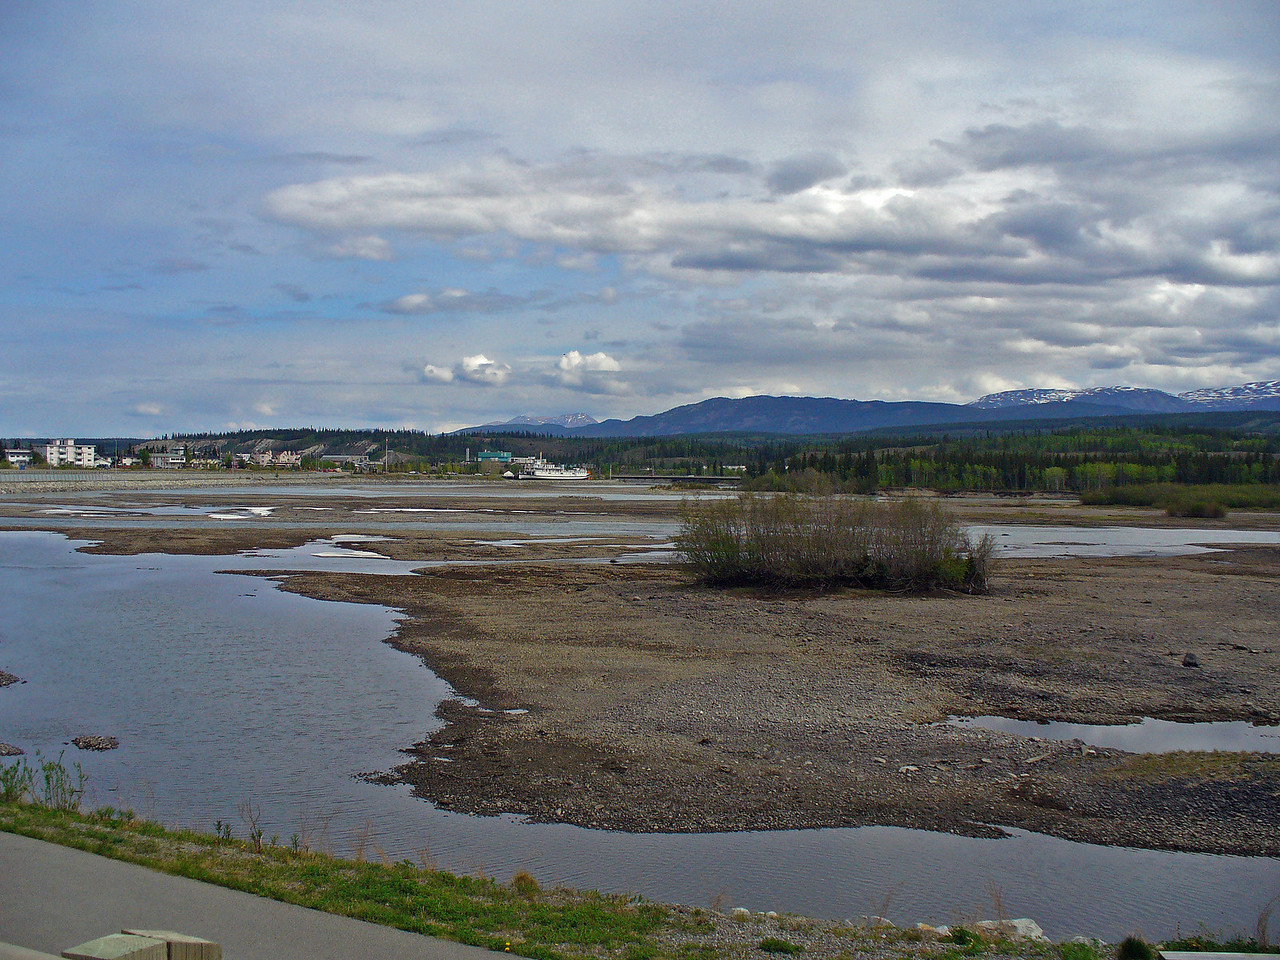 Yukon River going through Whitehorse and that's snow and ice still in the water